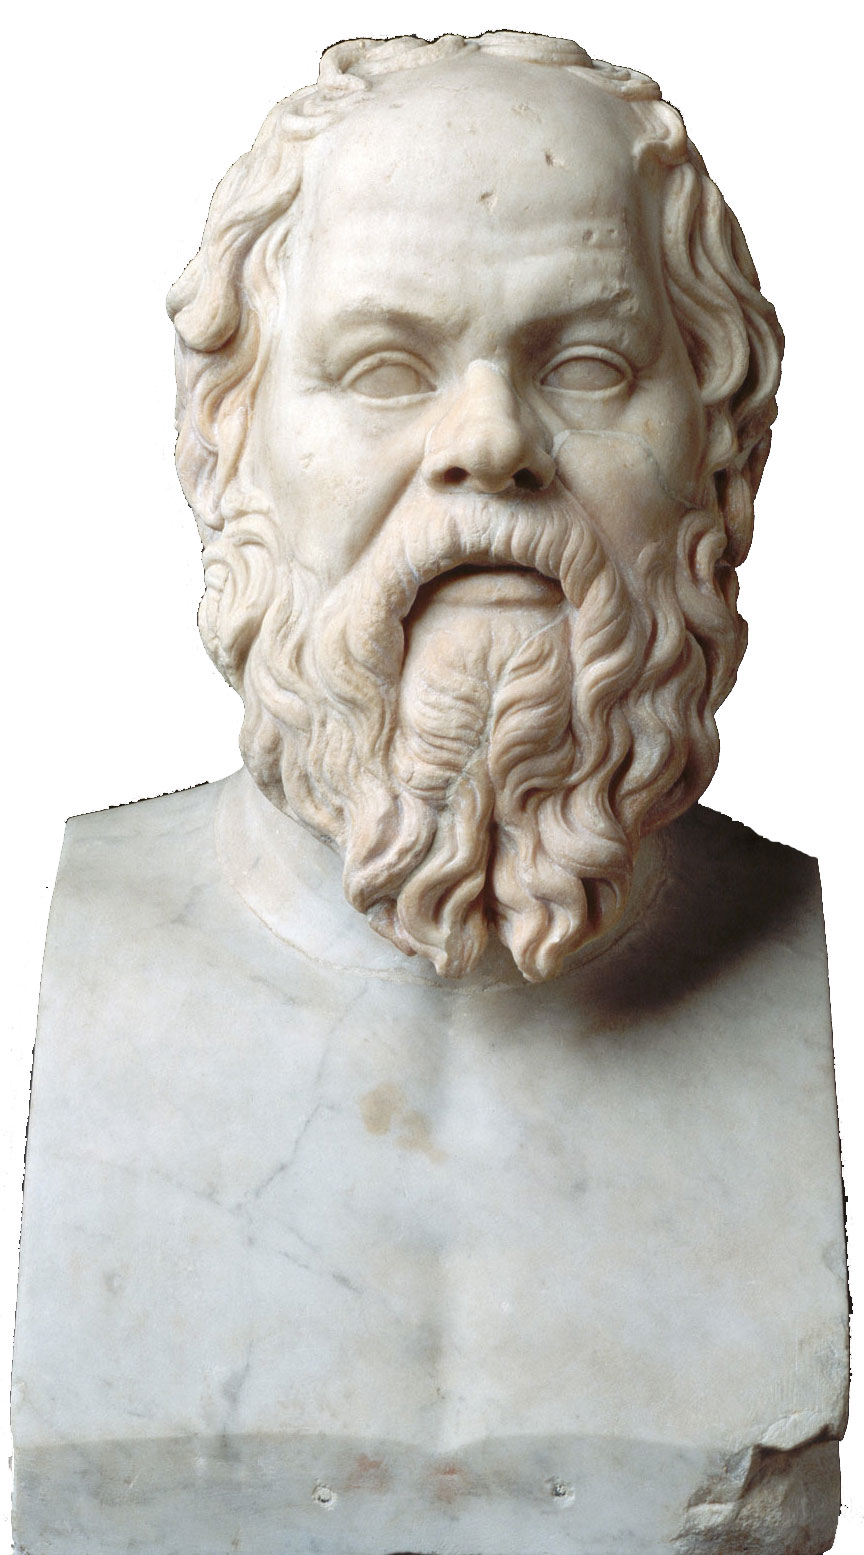 http://kurld.com/files/socrates.html